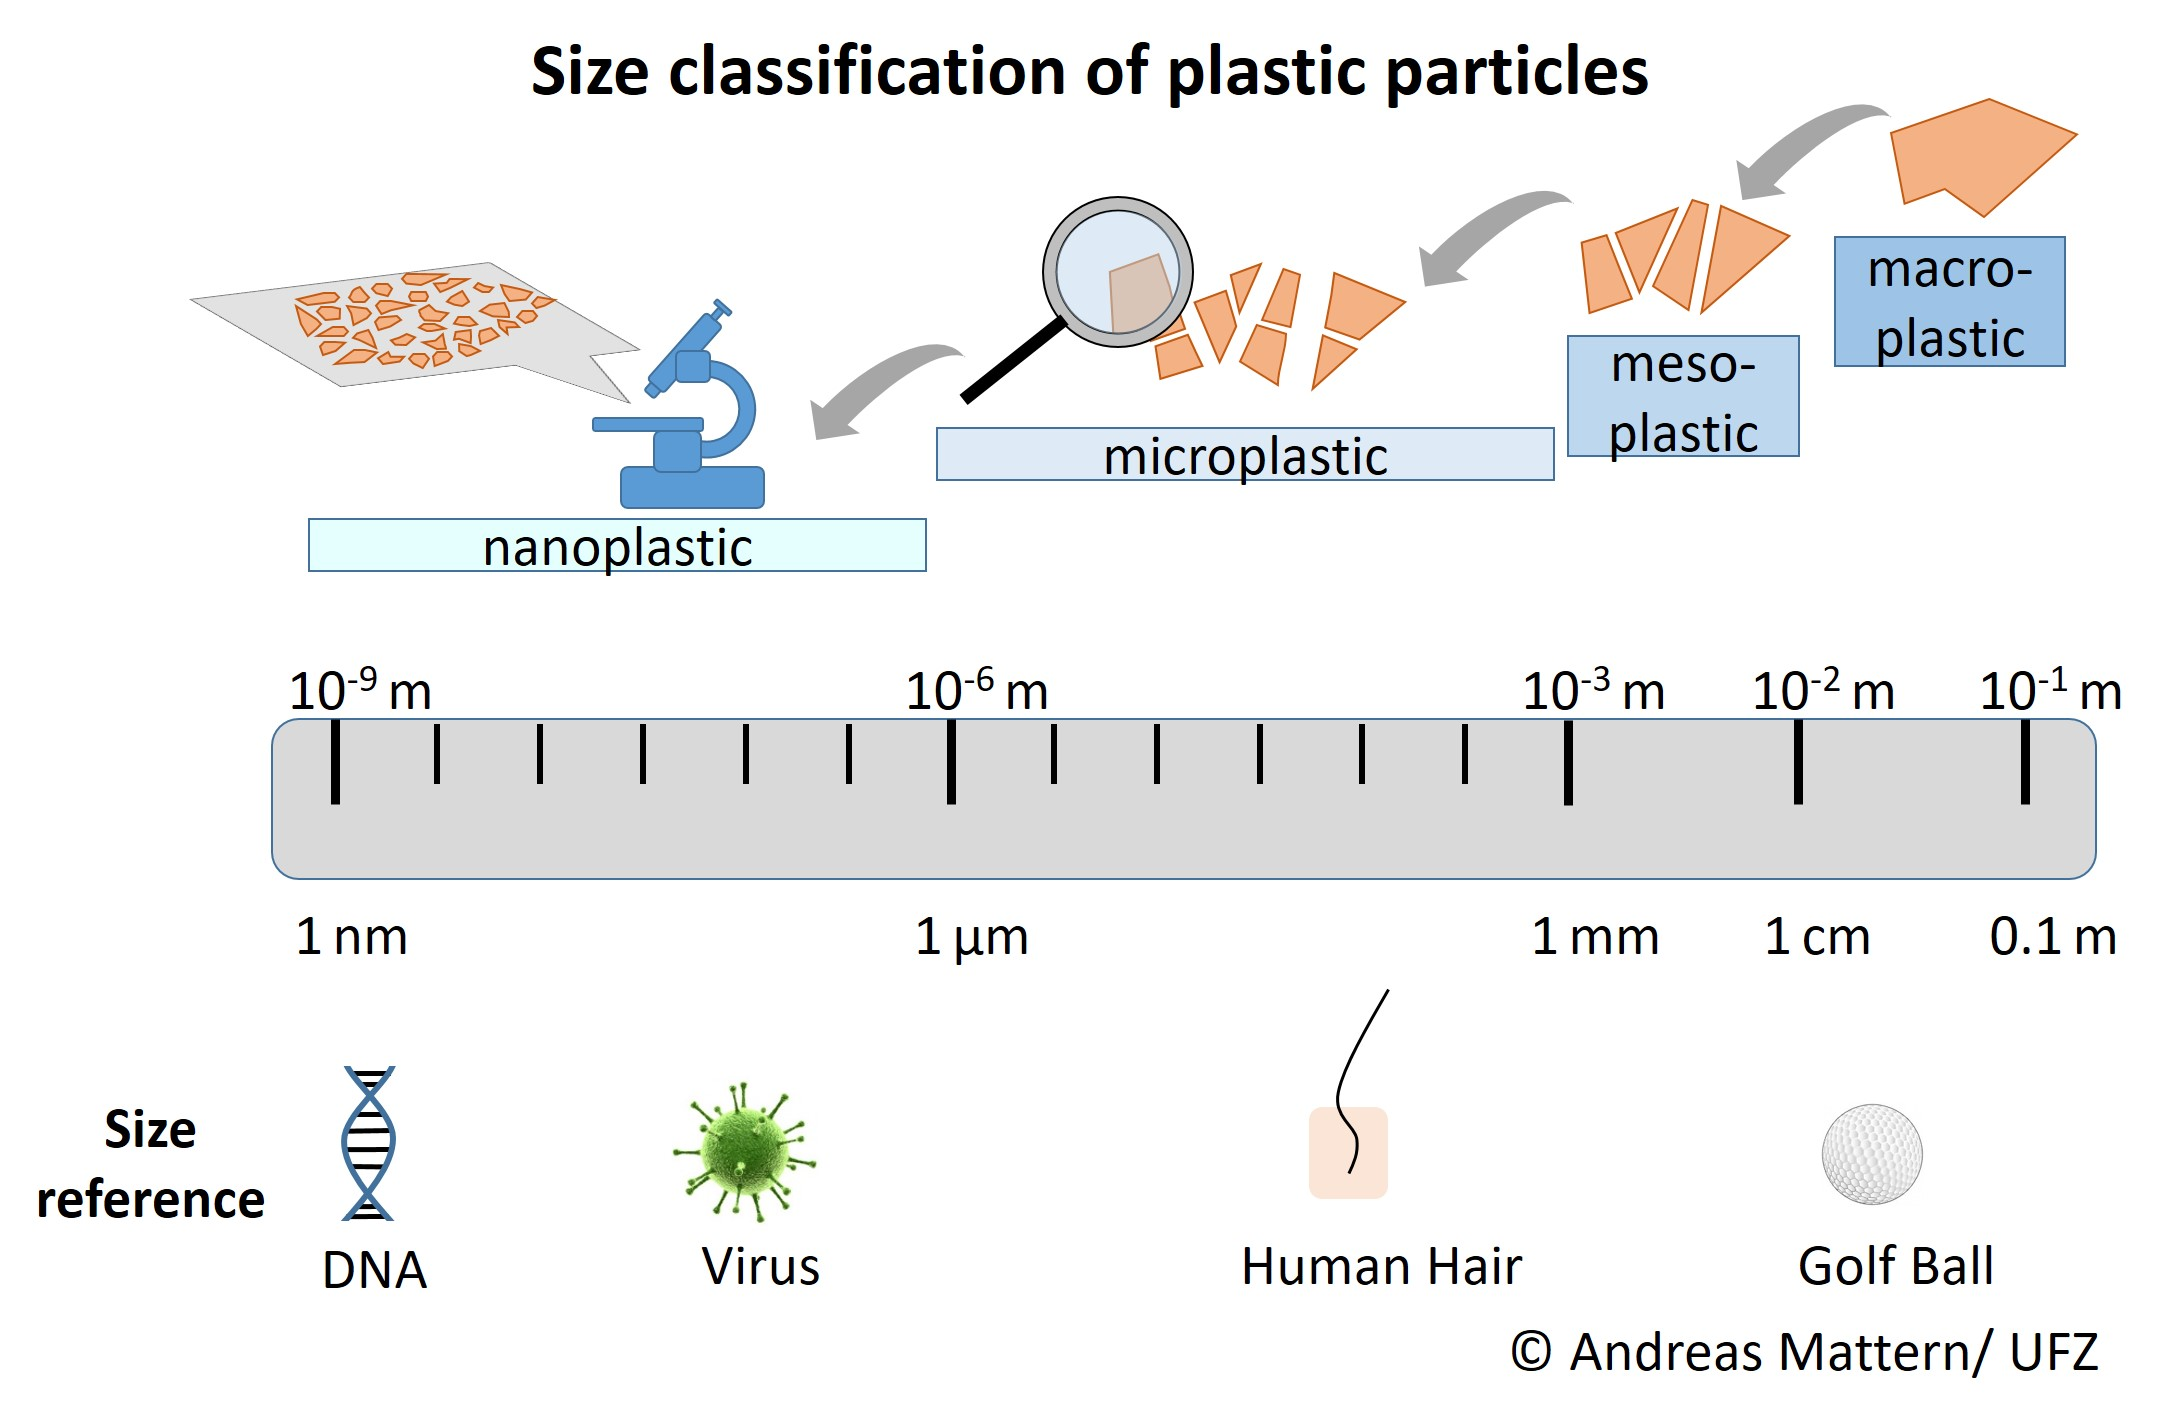 Classification of plastic particles by their size and size references, definition of nanoplastic by Hartmann et al. [3] © Andreas Mattern/ UFZ